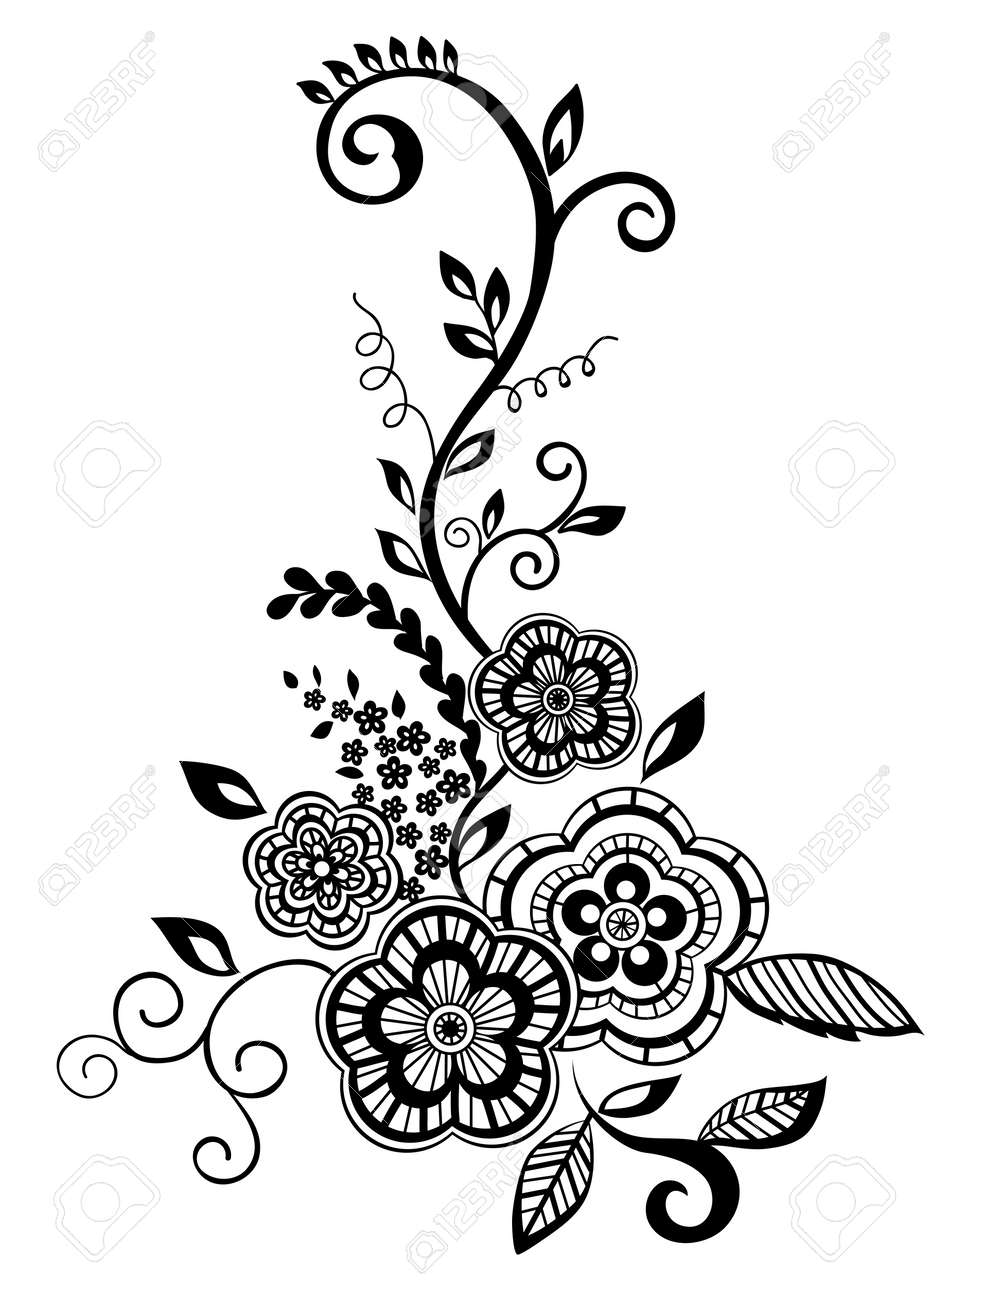 Beautiful floral element. Black-and-white flowers and leaves design element with imitation guipure embroidery. - 17833415